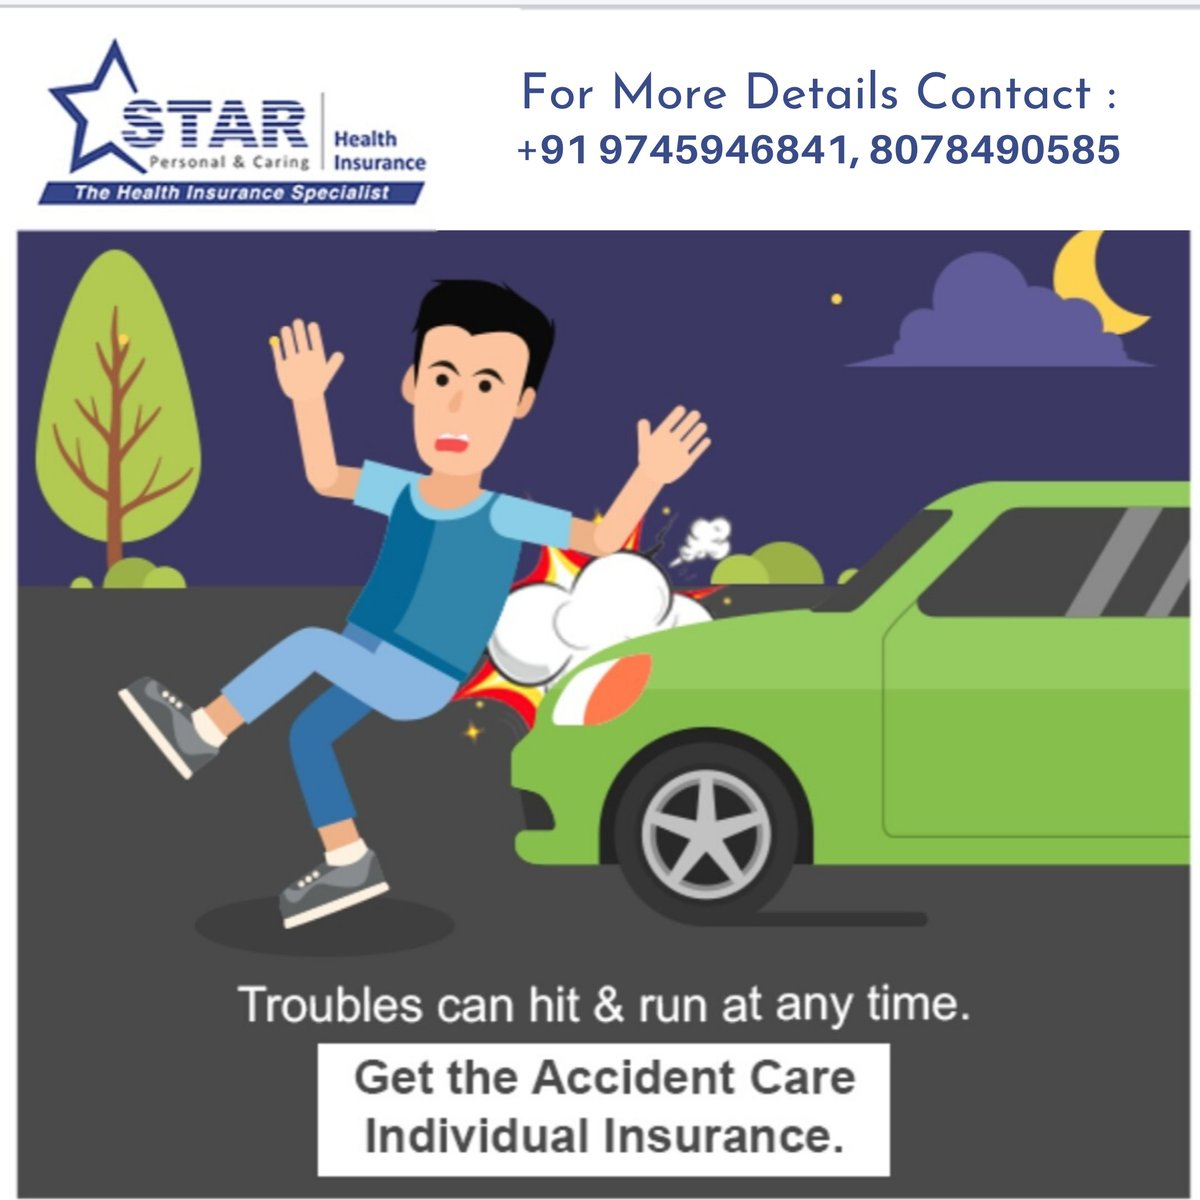 Star Health Insurance  For more contact : +91 9745946841 Or 8078490585 or Click this Link : https://forms.gle/a8Gn7RM3tv71cU8P6…  #starhealthinsurance #healthinsurance #starhealth #insurance #family #familytime #familyiseverything #familygoals #securedfamily #healthyfamily #happymomentspic.twitter.com/HUrtr8Jufb